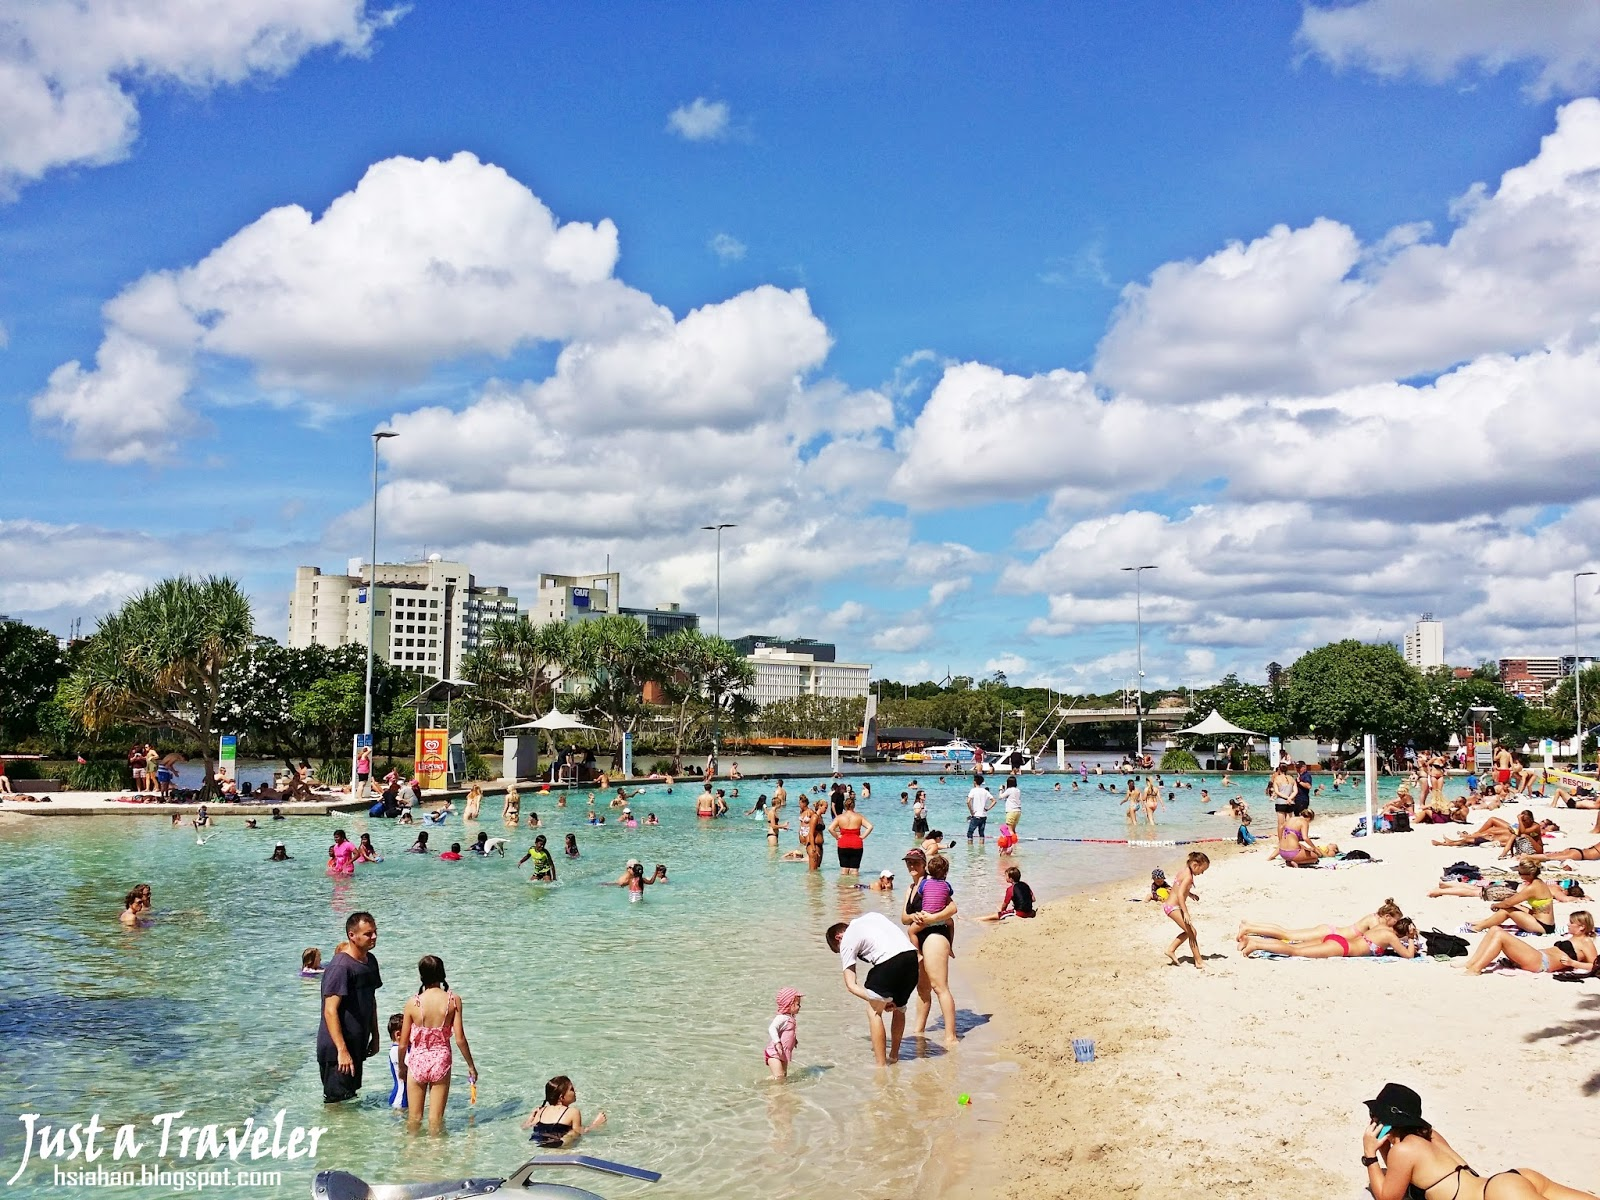 布里斯本-景點-推薦-南岸公園-旅遊-自由行-Brisbane-Attraction-South-Bank-Parklands-Tourist-destination